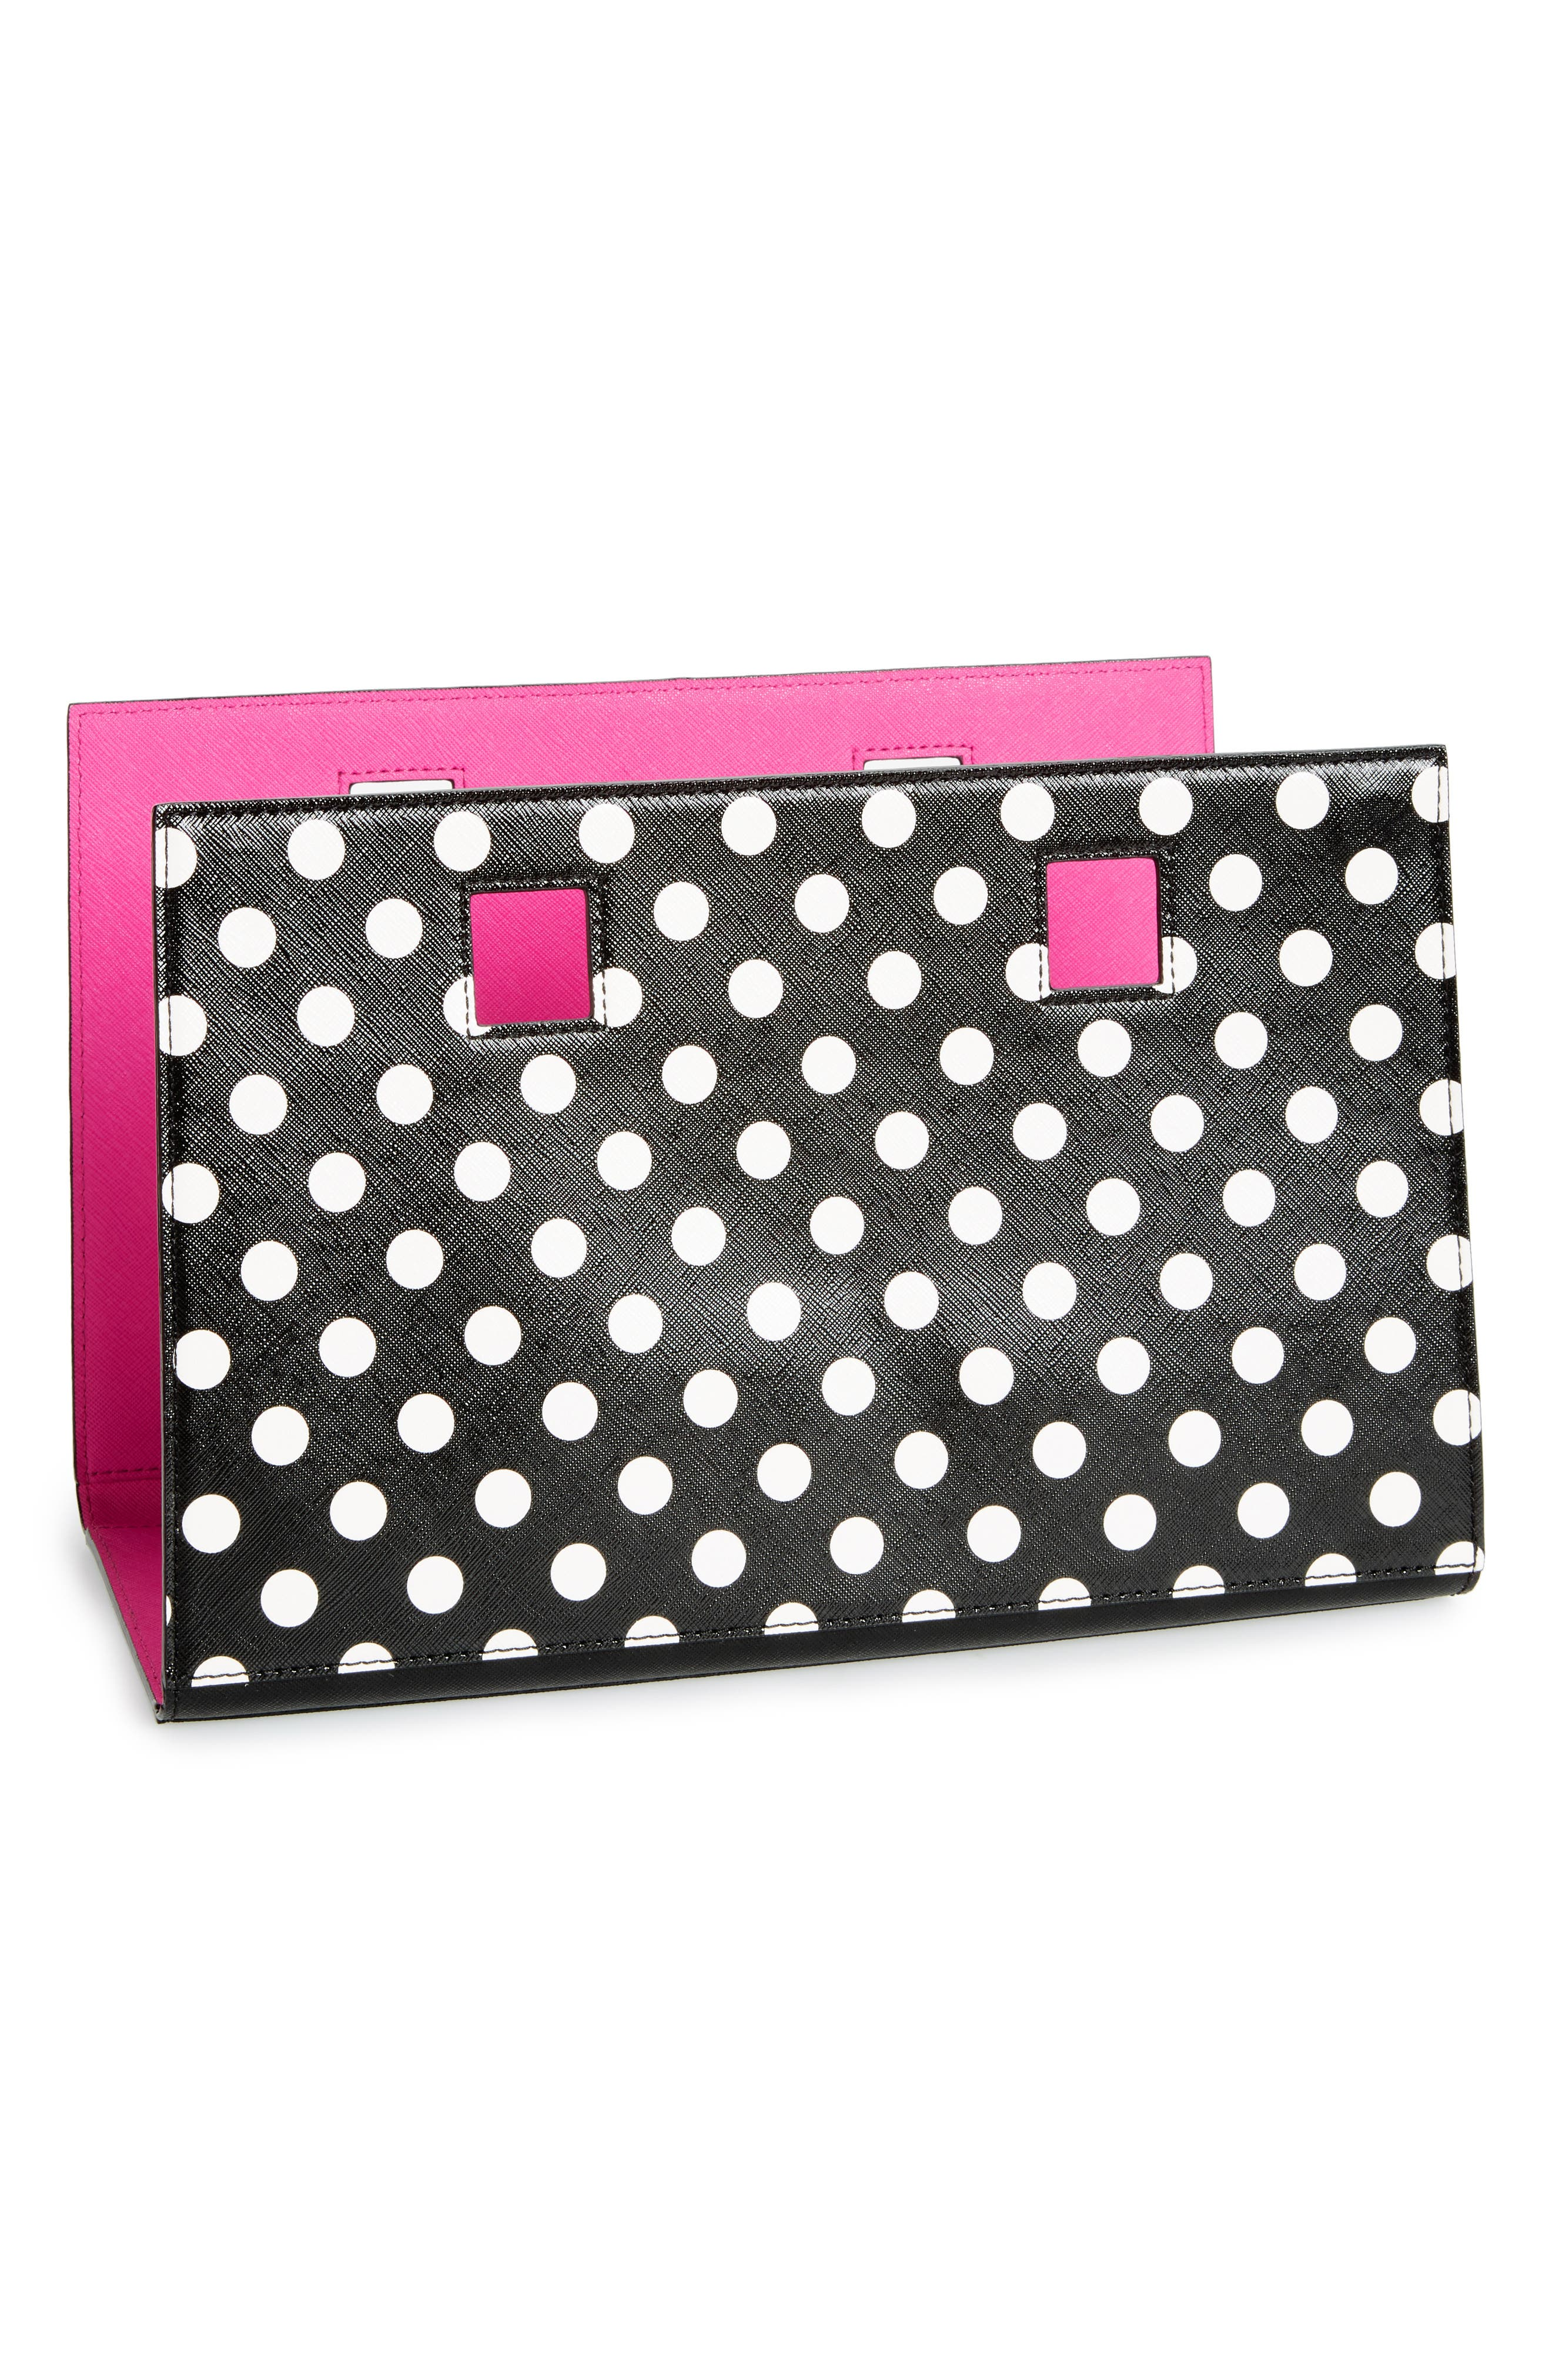 kate spade new york make it mine reversible polka dot/solid leather snap-on accent flap